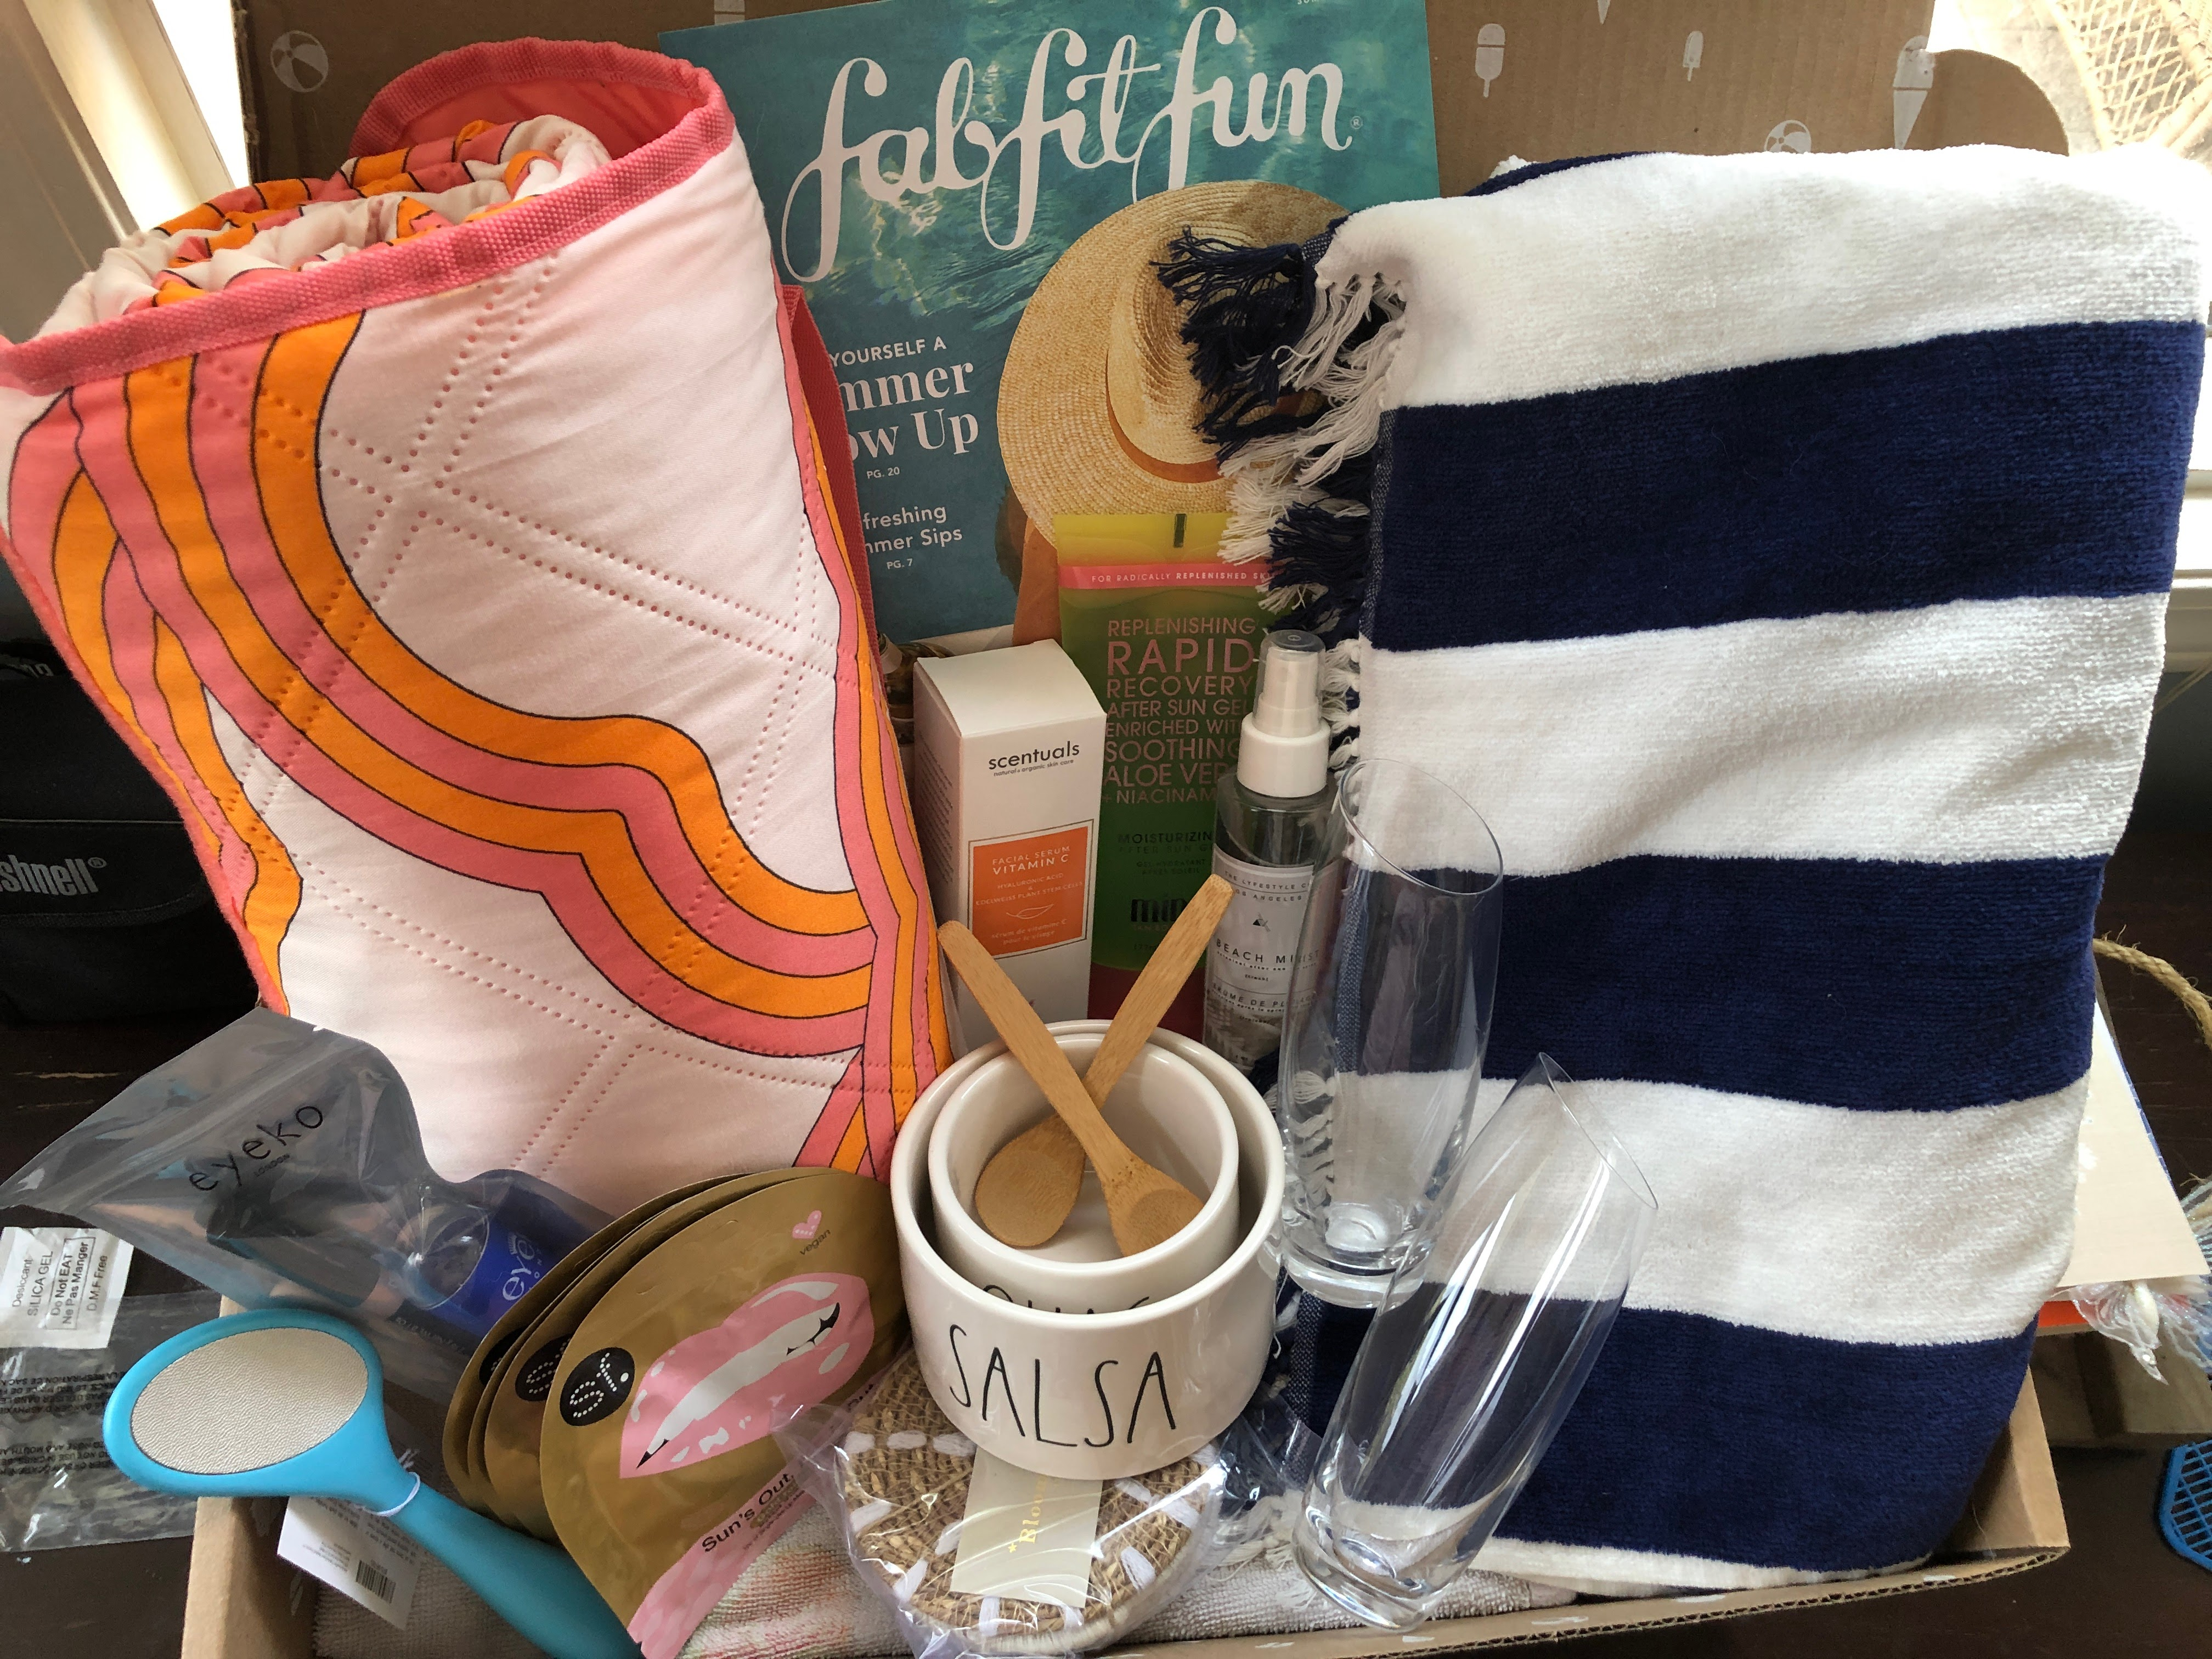 This image shows all the contents of the fitfabfun box.  Most visible are a bright Orange and pink rolled up blanket and a blue and white striped towel.